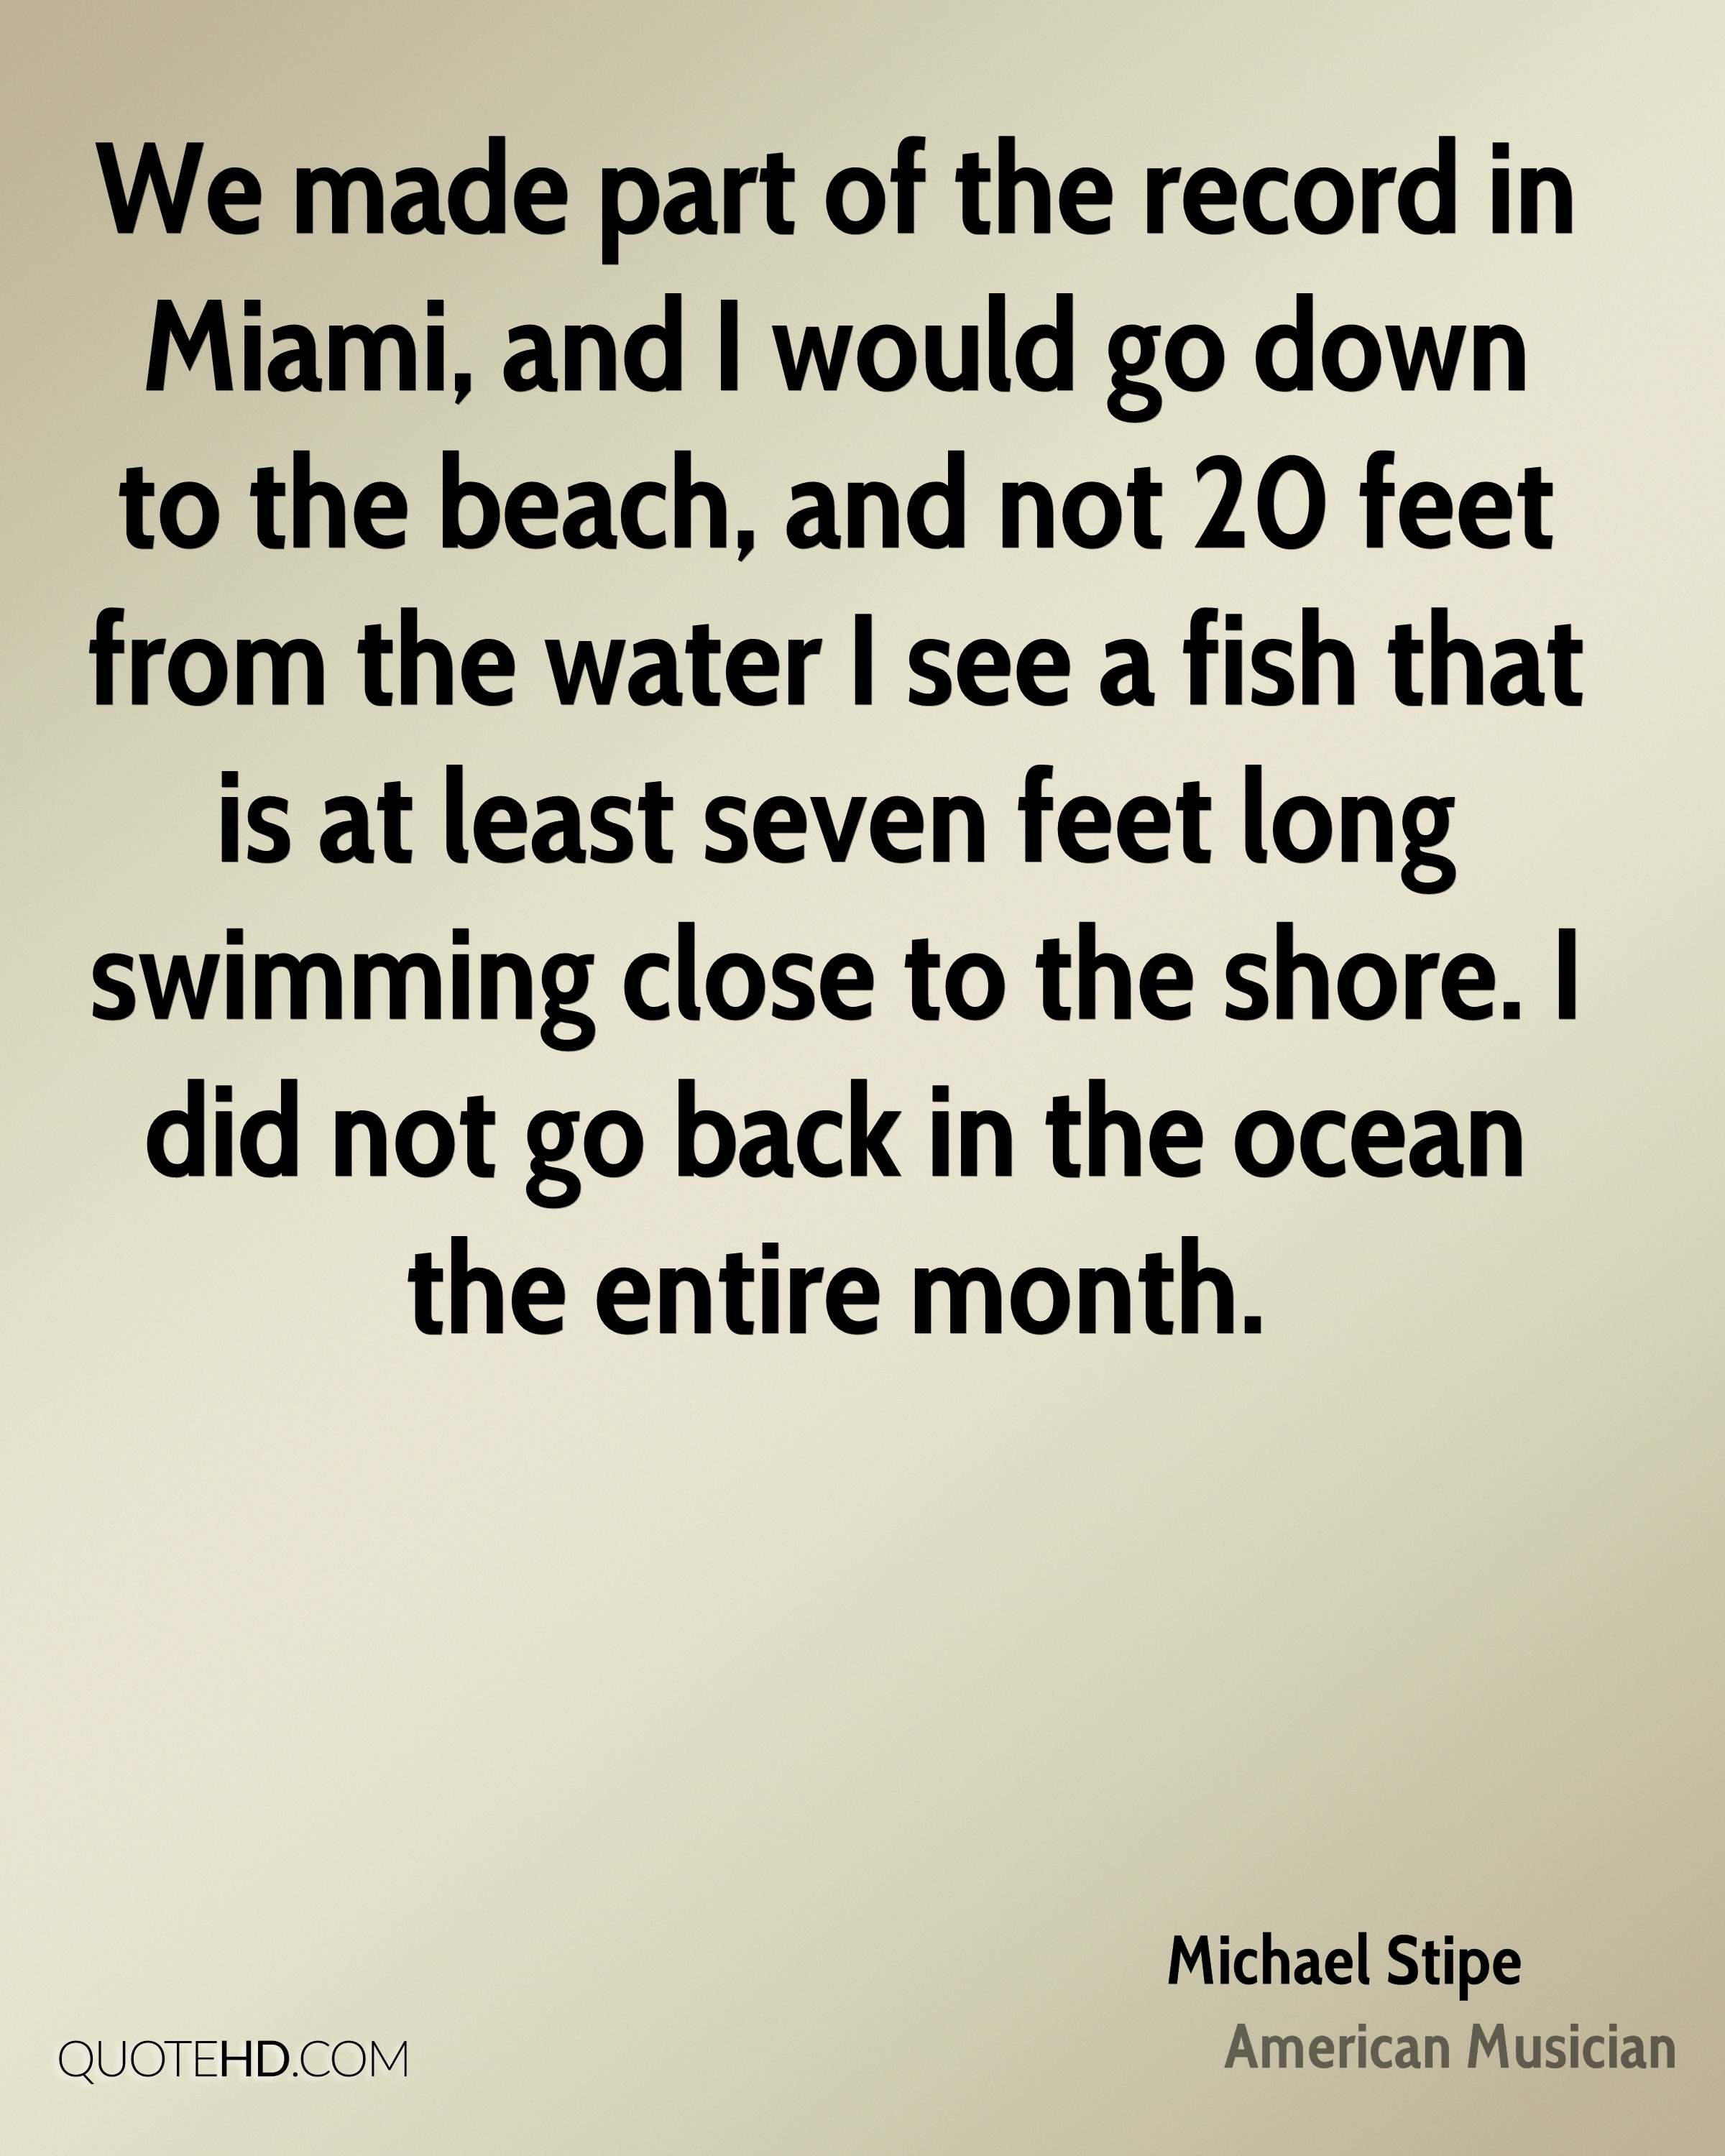 We made part of the record in Miami, and I would go down to the beach, and not 20 feet from the water I see a fish that is at least seven feet long swimming close to the shore. I did not go back in the ocean the entire month.